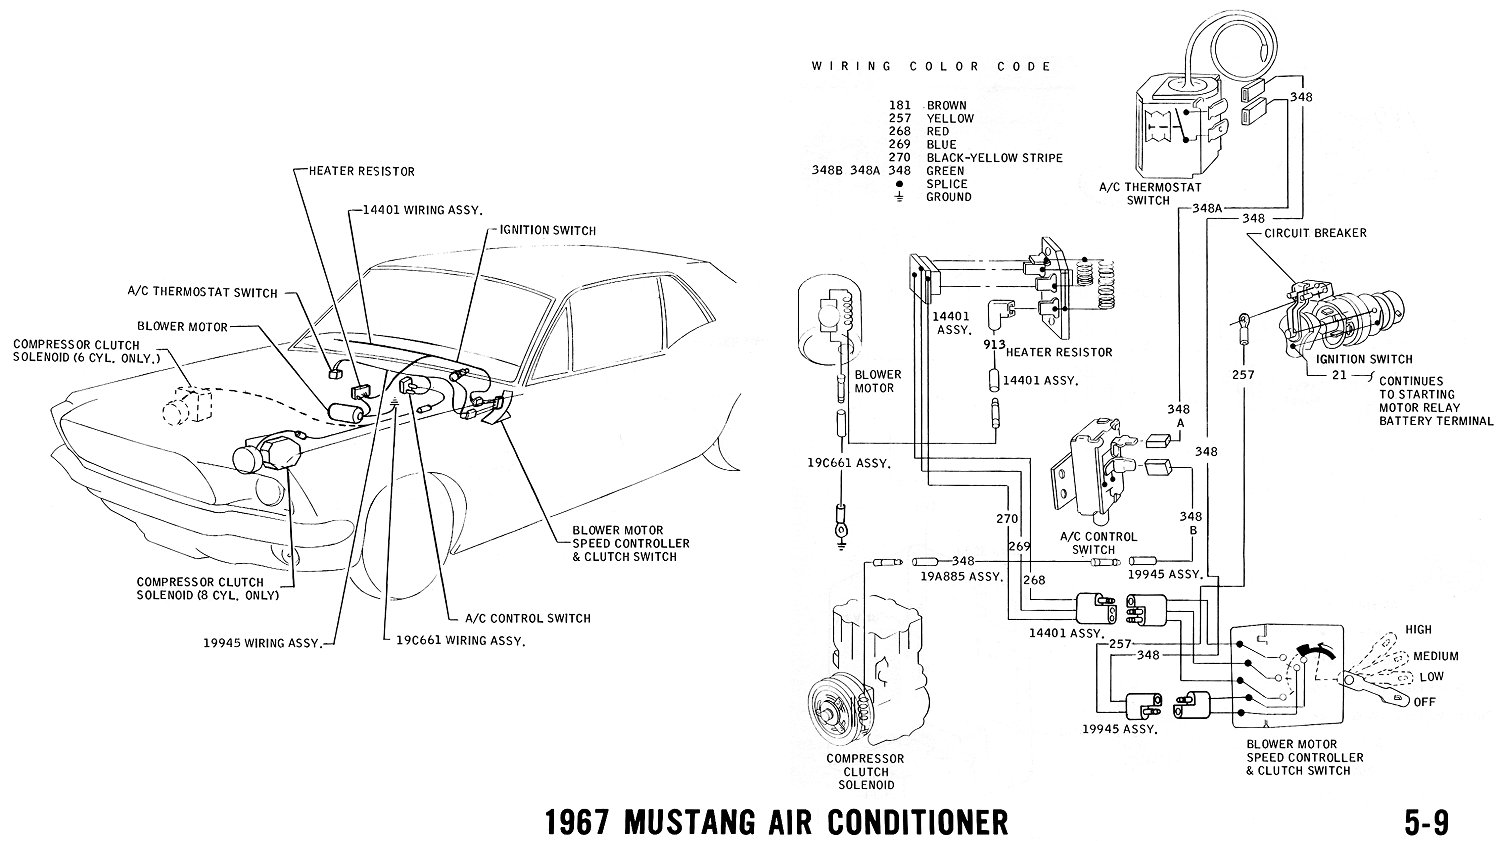 1967 mustang engine transmission diagram data wiring diagram1967 mustang wiring and vacuum diagrams average joe restoration 1967 mustang power steering 1967 mustang air